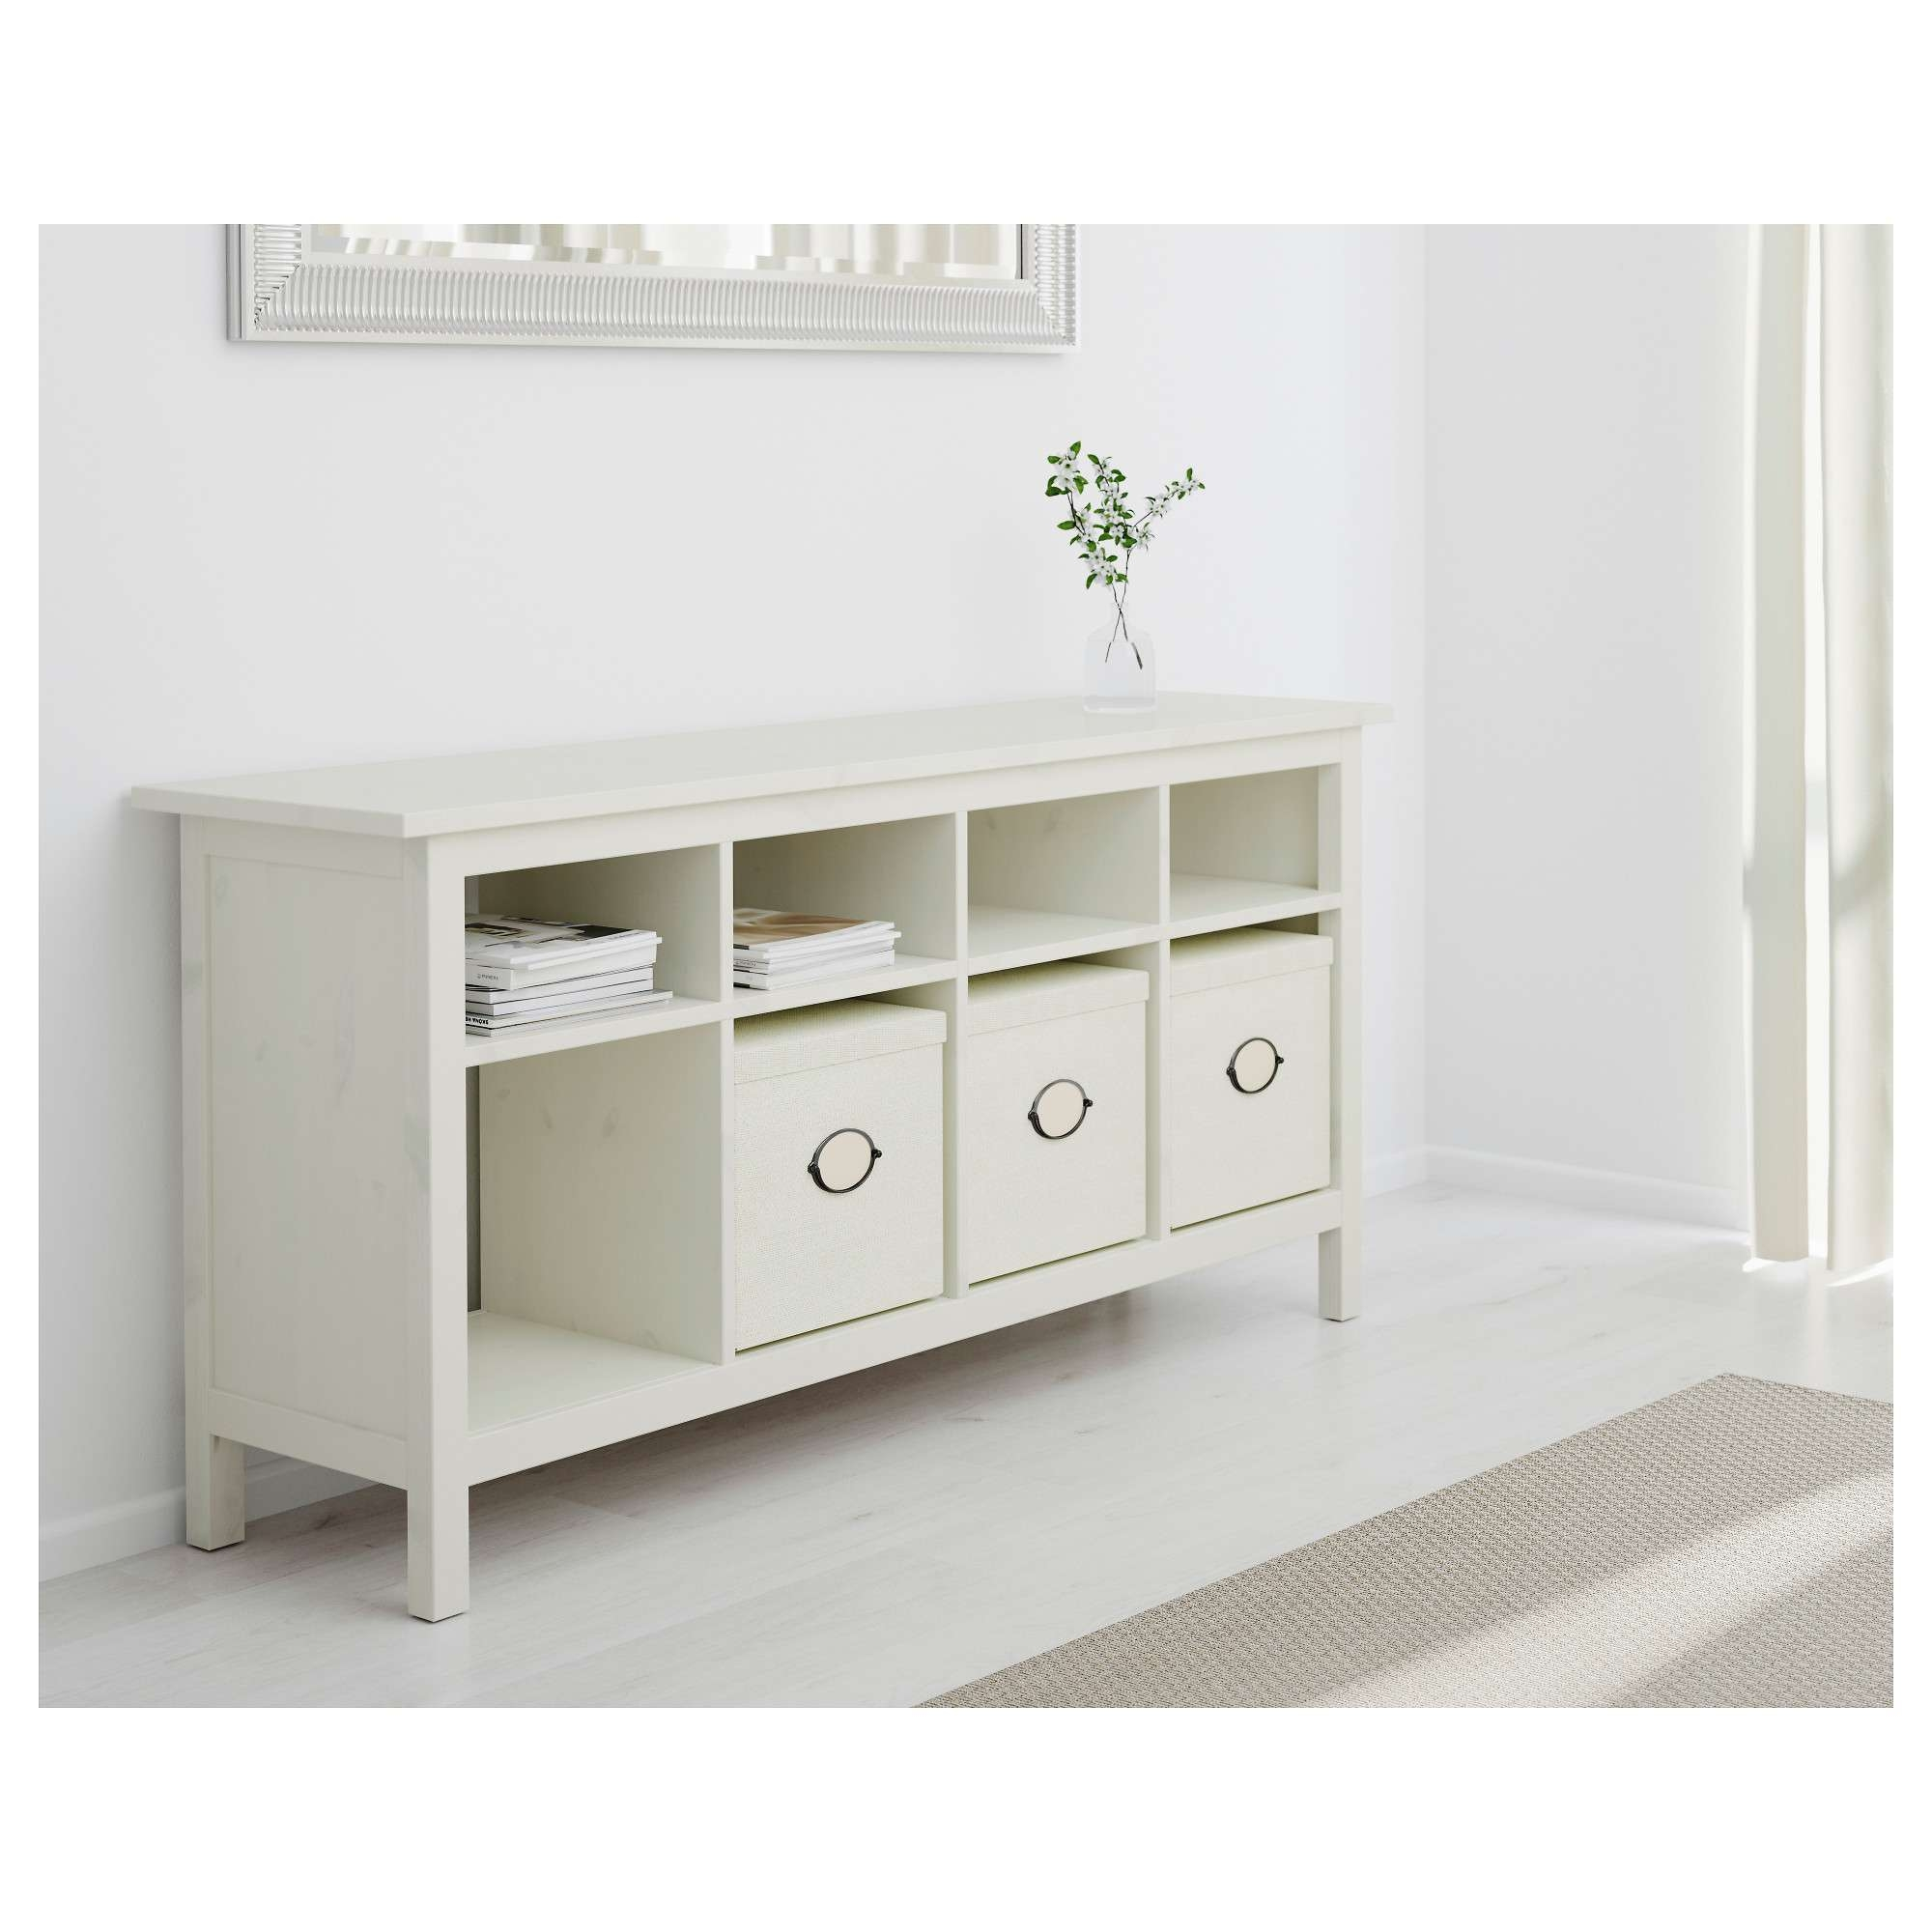 Hemnes Console Table White Stain 157x40 Cm – Ikea For Sideboards And Tables (View 15 of 20)